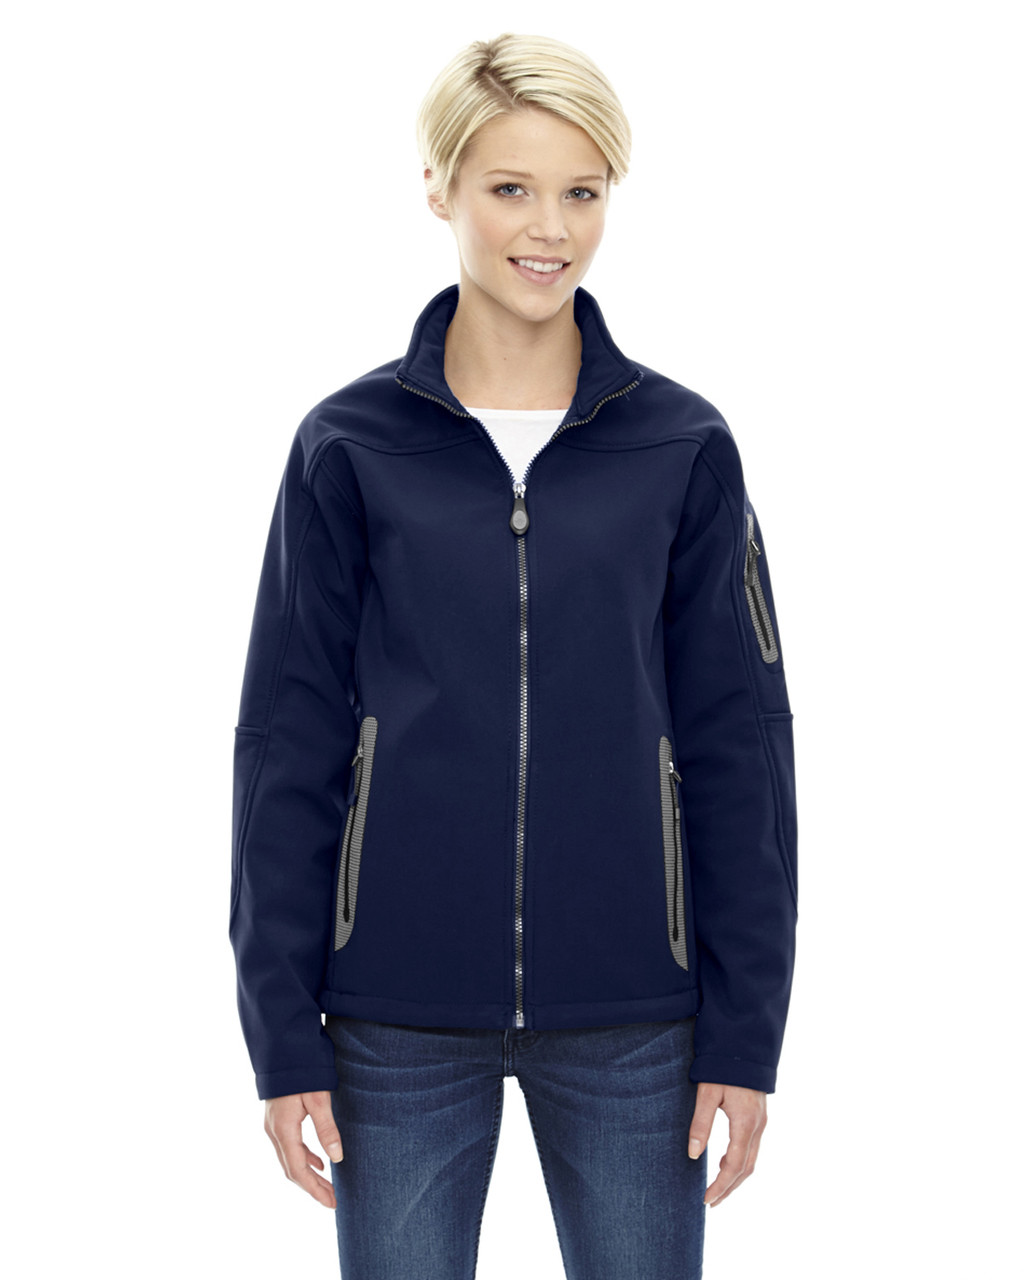 Classic Navy - 78060 North End Ladies' Soft Shell Technical Jacket | Blankclothing.ca